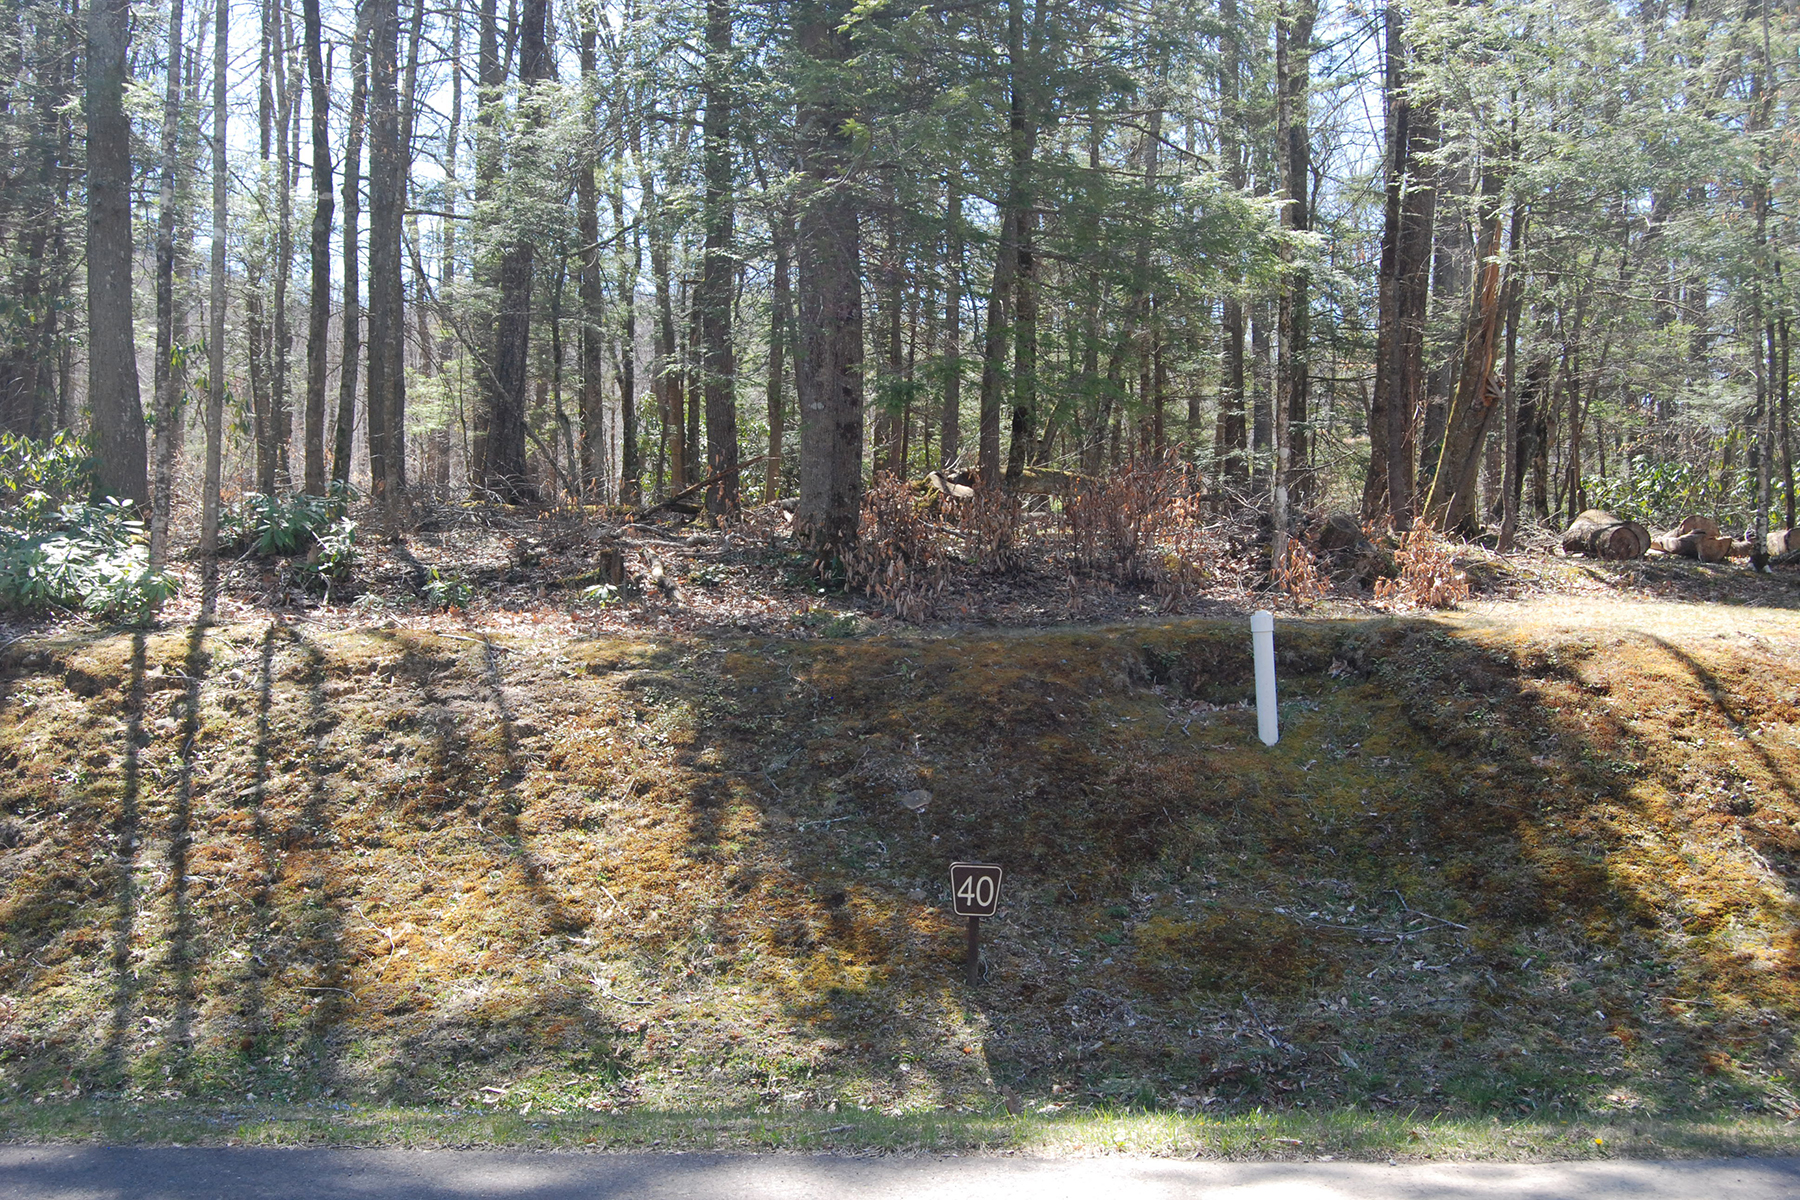 Land for Sale at LINVILLE - THE VILLAGE AT GRANDFATHER Lot 40 Linville River Lane, Linville, North Carolina 28646 United States